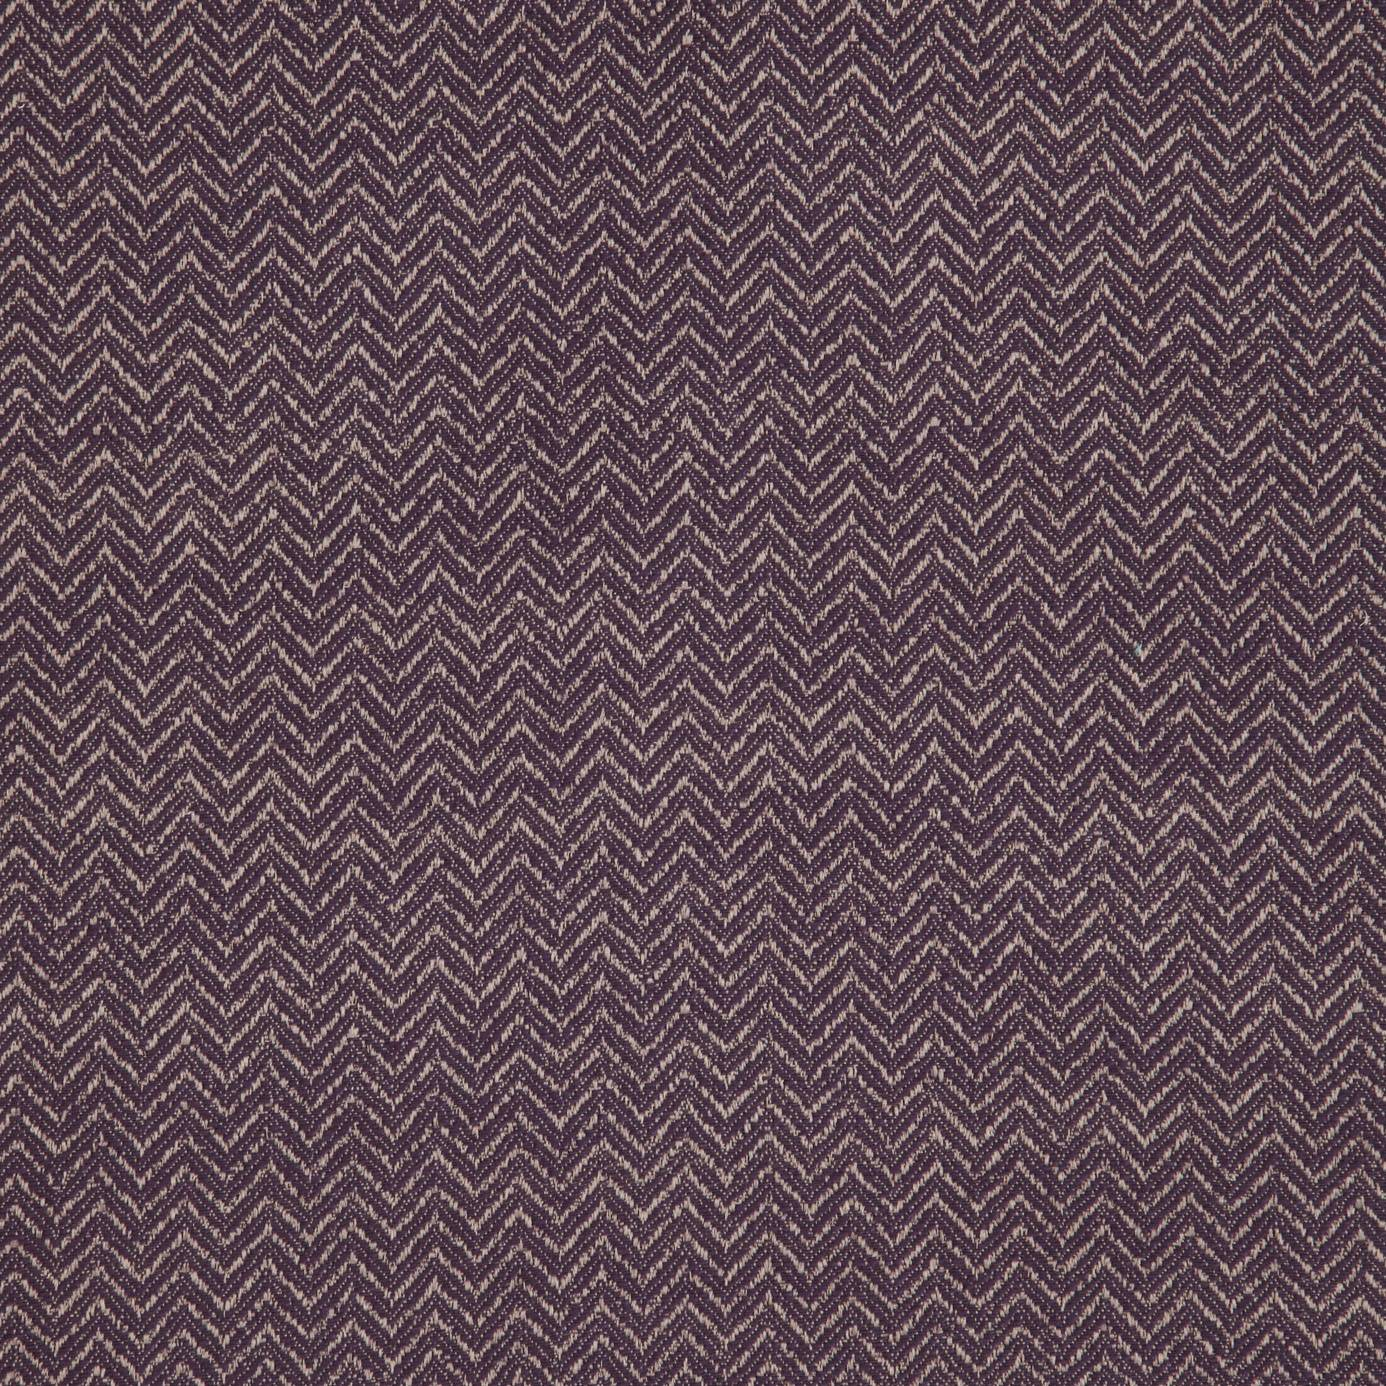 ... Cassis (ZEBOCAS) - iLiv Seralio Cassis Fabrics & Wallpapers Collection